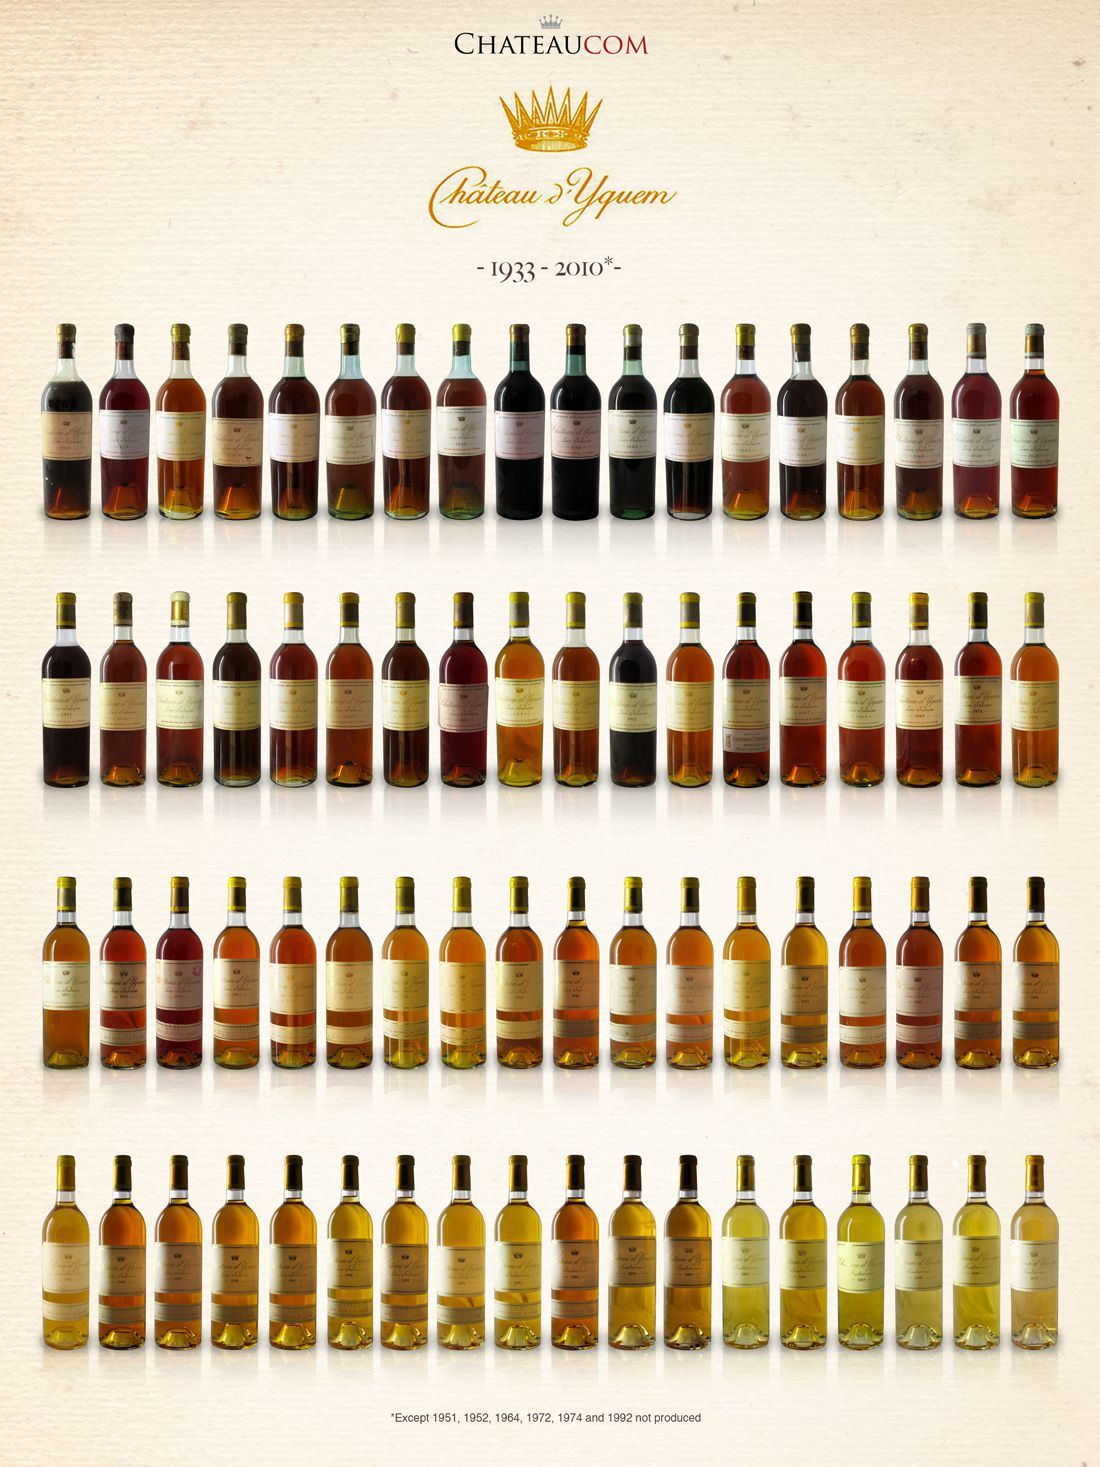 Collection Château d'Yquem 1933-2010